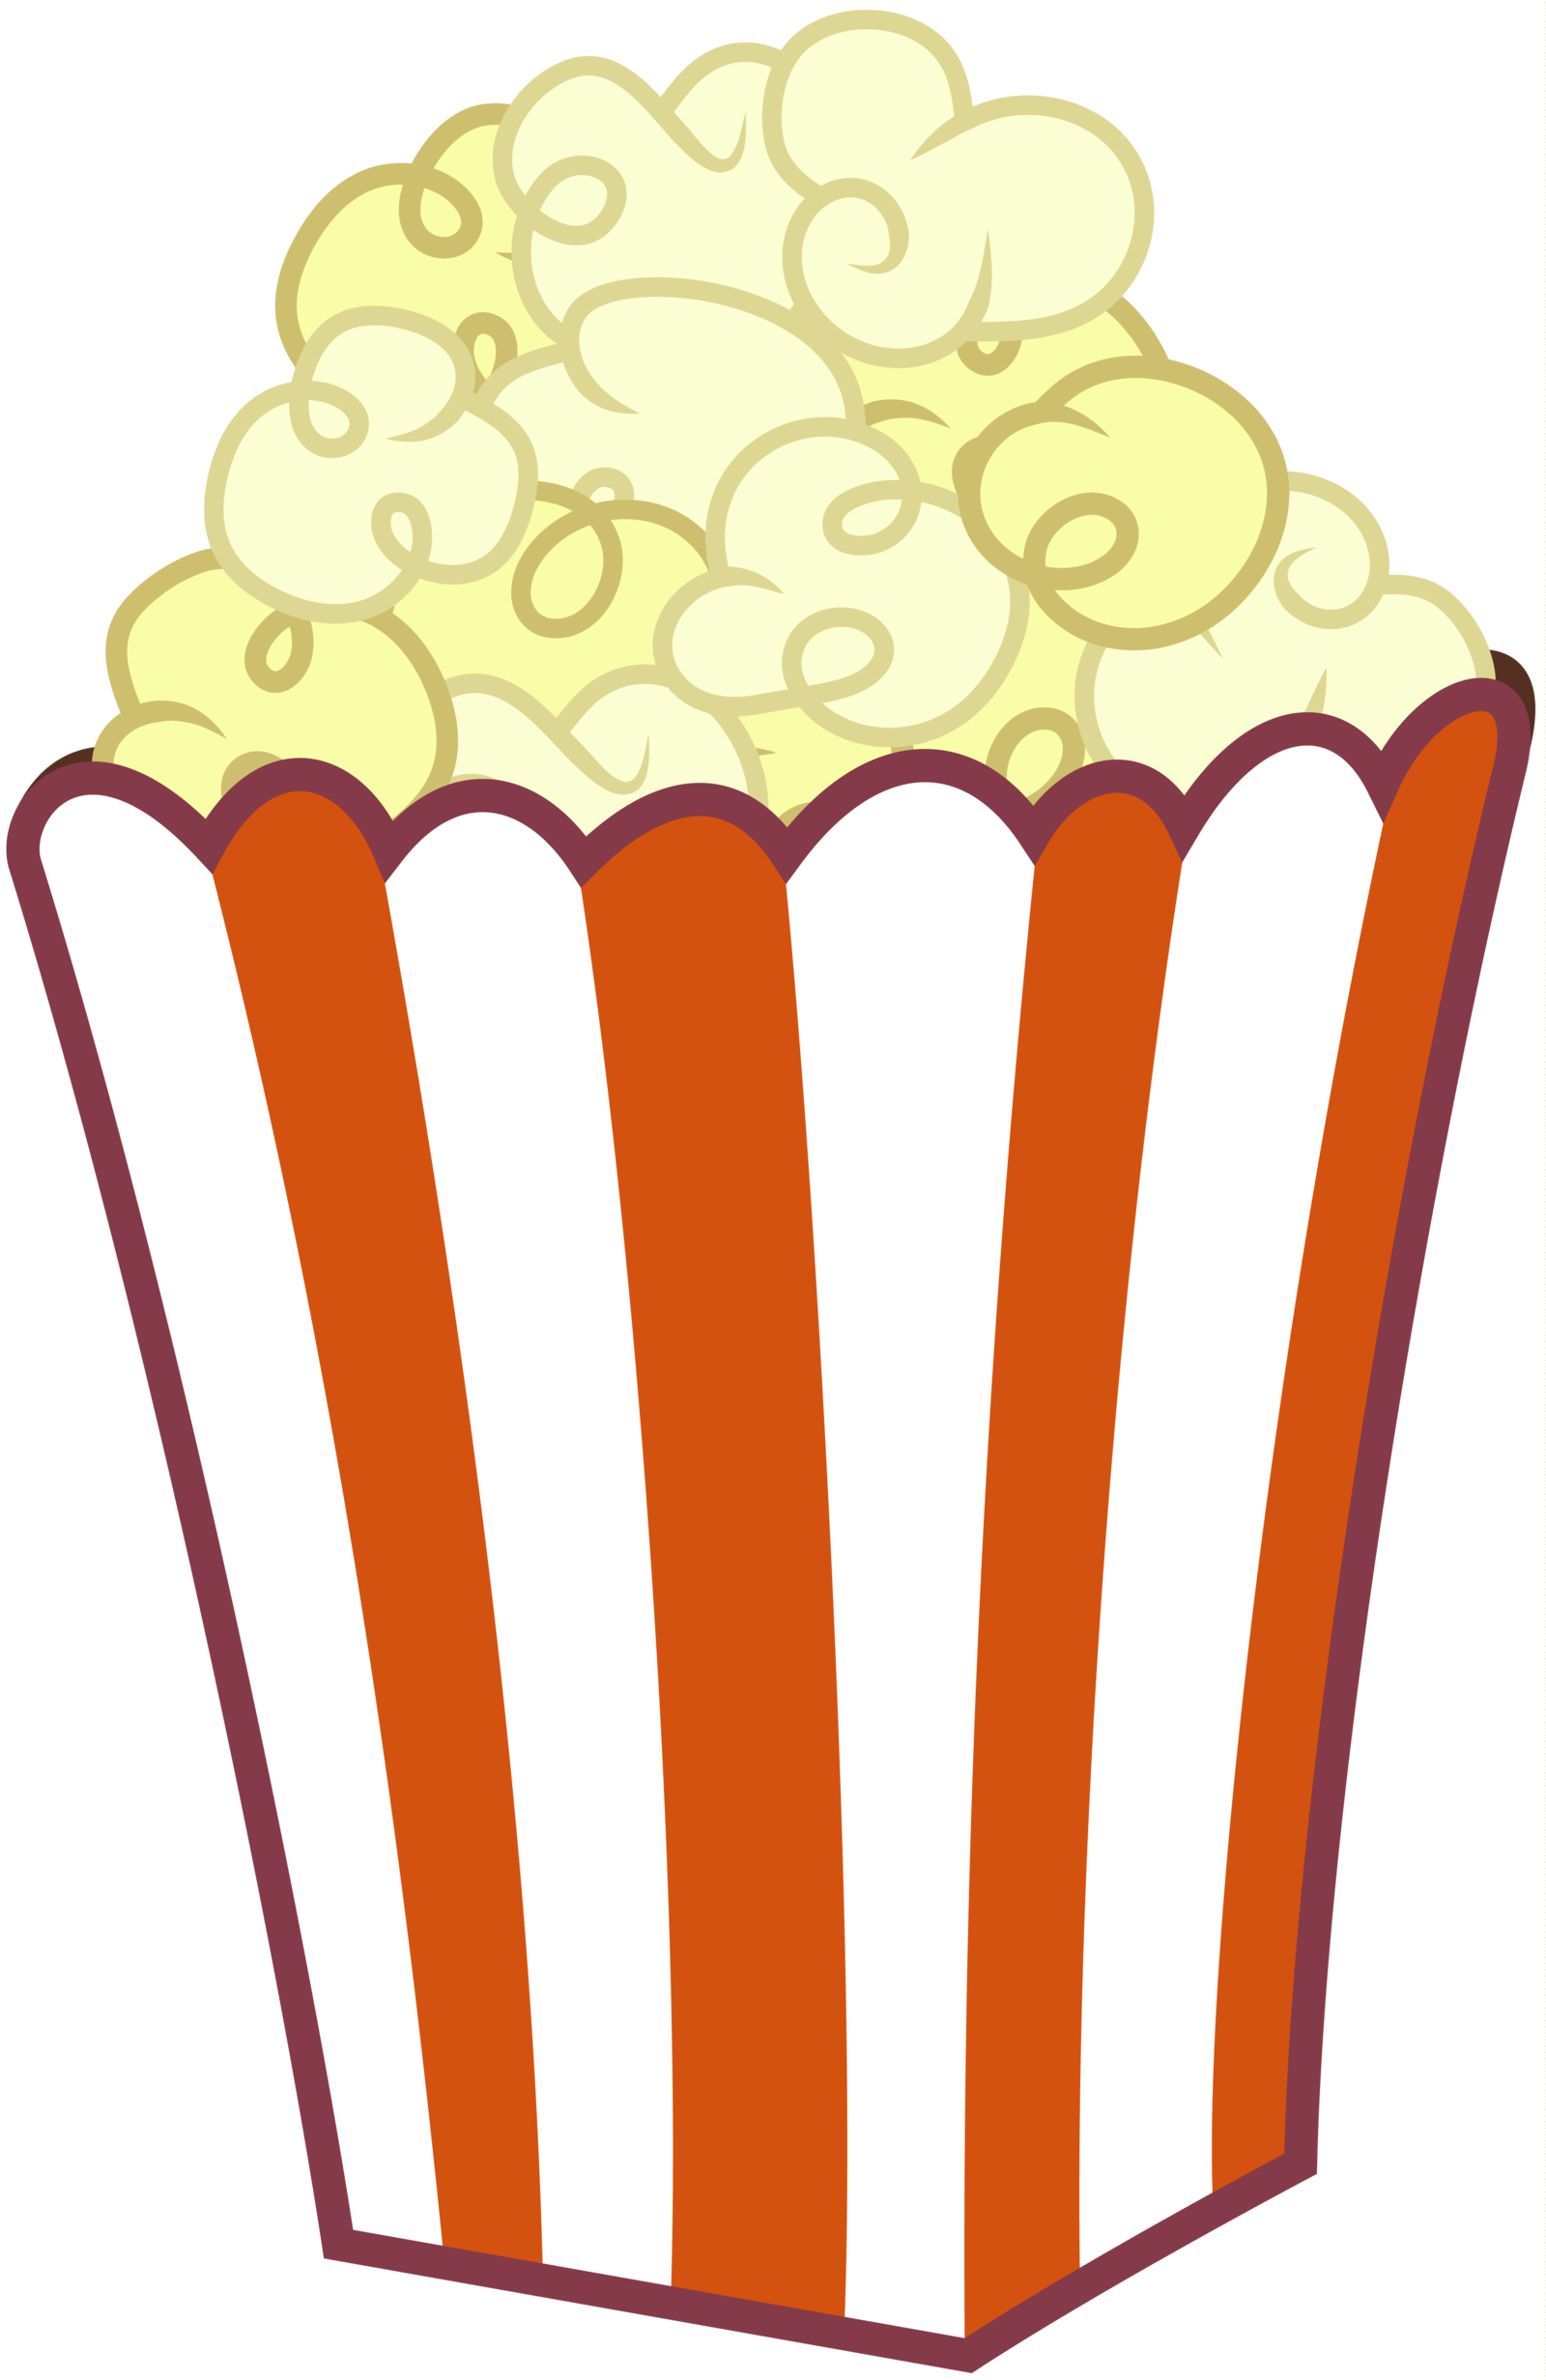 Red white popcorn boxes party invite clipart png. Image result for vector